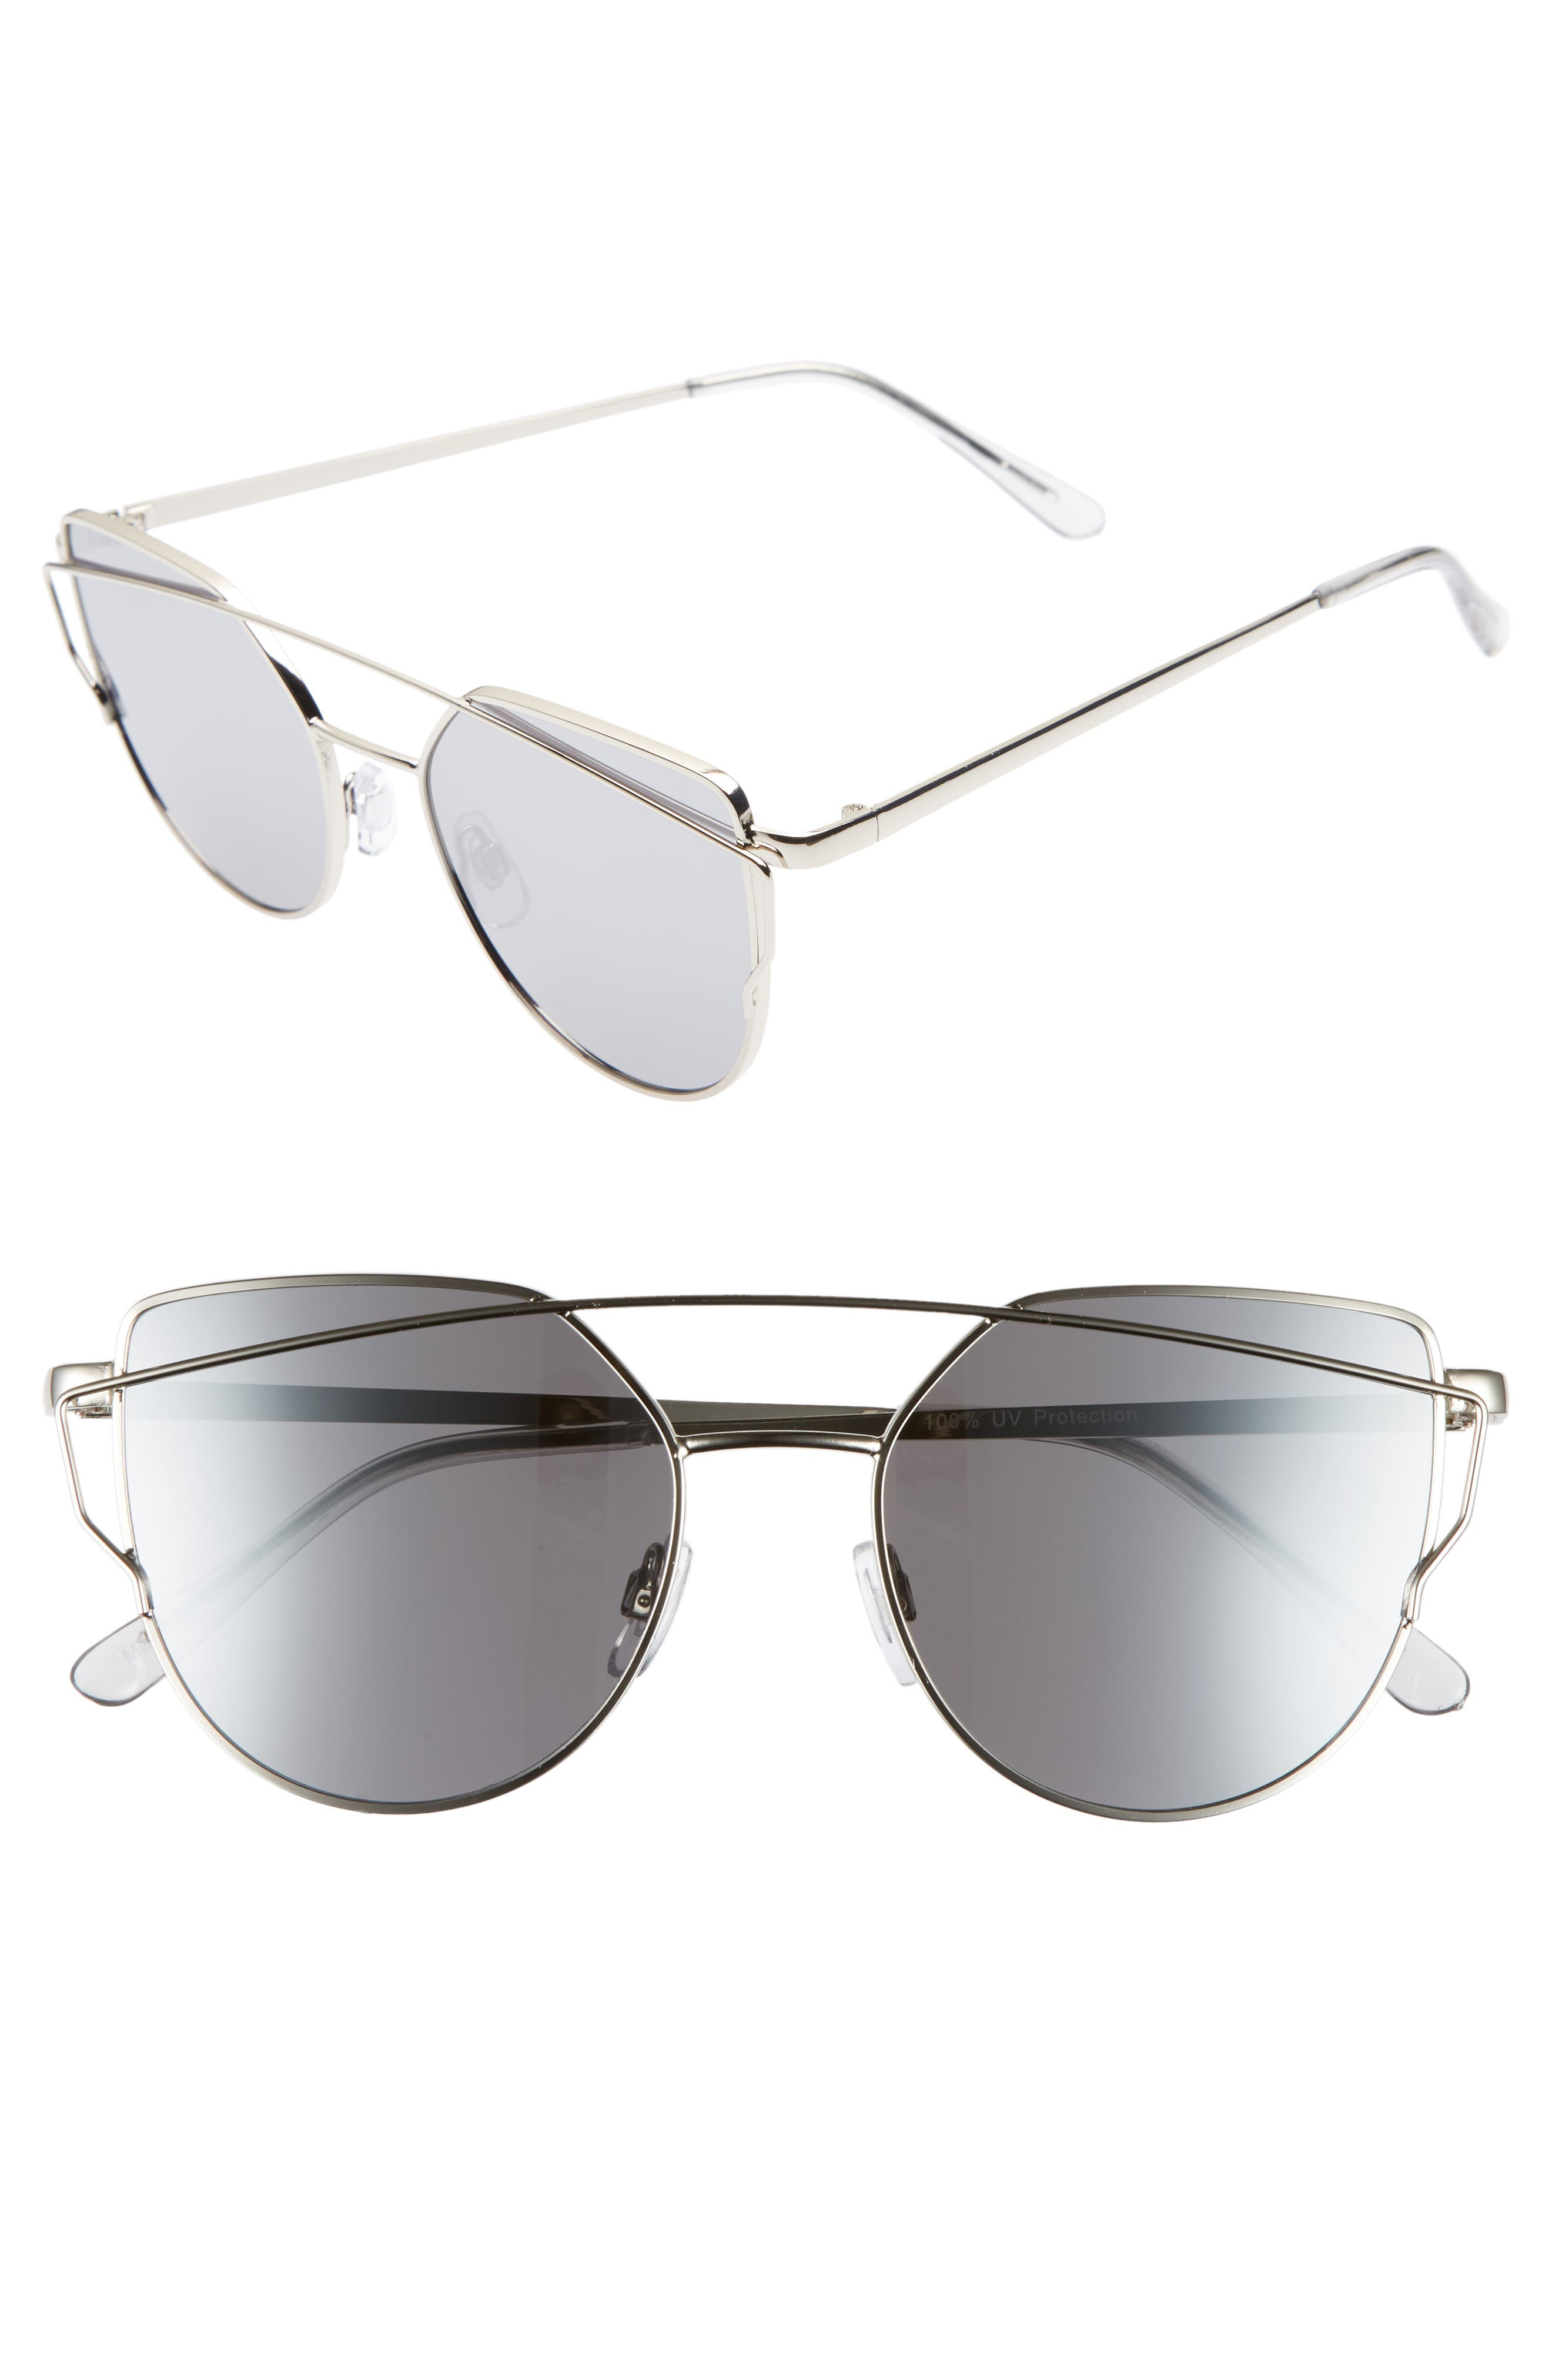 51mm Thin Brow Angular Aviator Sunglasses,                         Main,                         color,